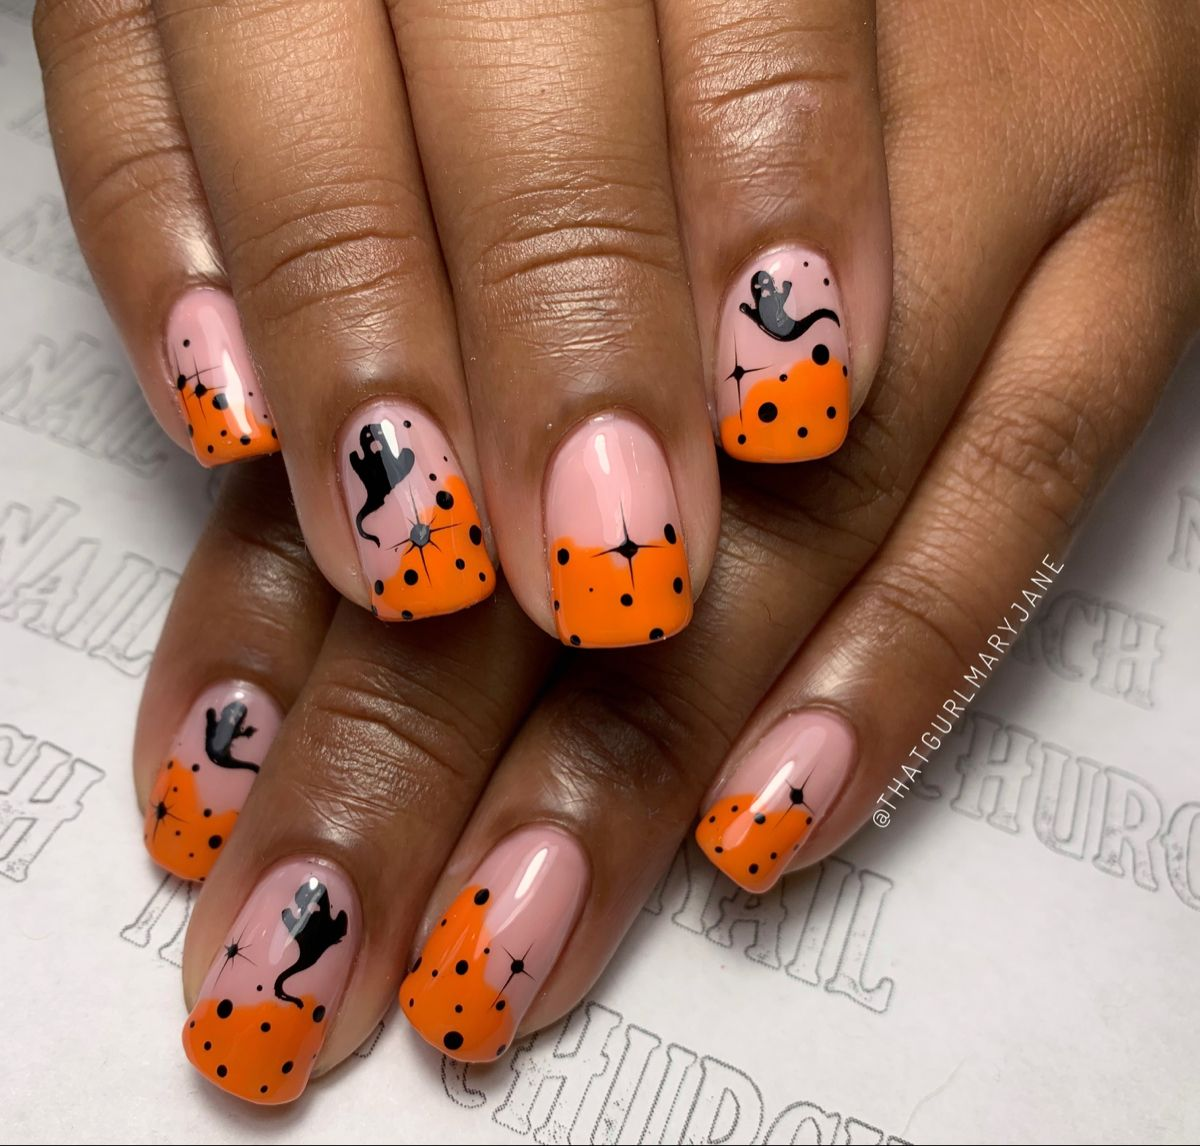 #nails #spooky #halloween #nailart #nailsofinstagram #nailstagram #naildesigns #nailsonfleek #nailsmagazine #nailartdesigns #nailstyle #nailartclub #nailaddiction #nailfashion